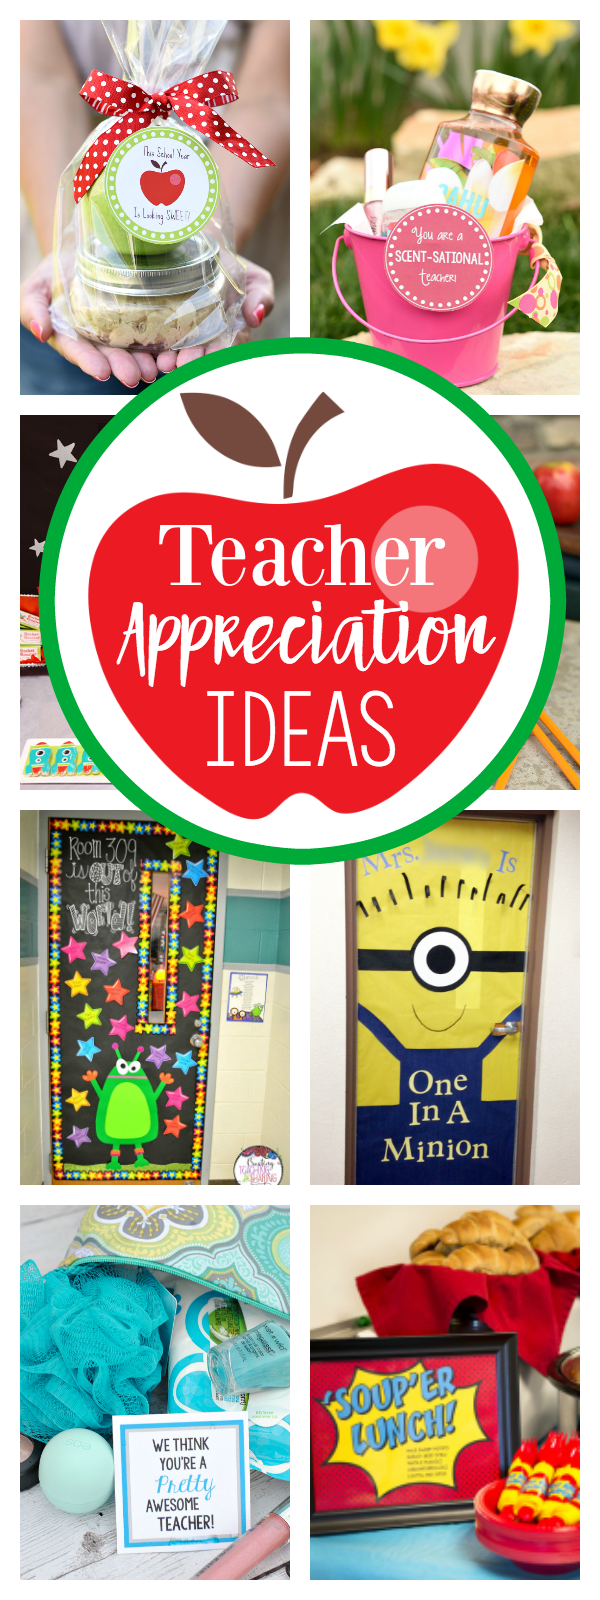 Teacher Appreciation Week Ideas-Teacher Gift Ideas, Door Decorations, Themes and More